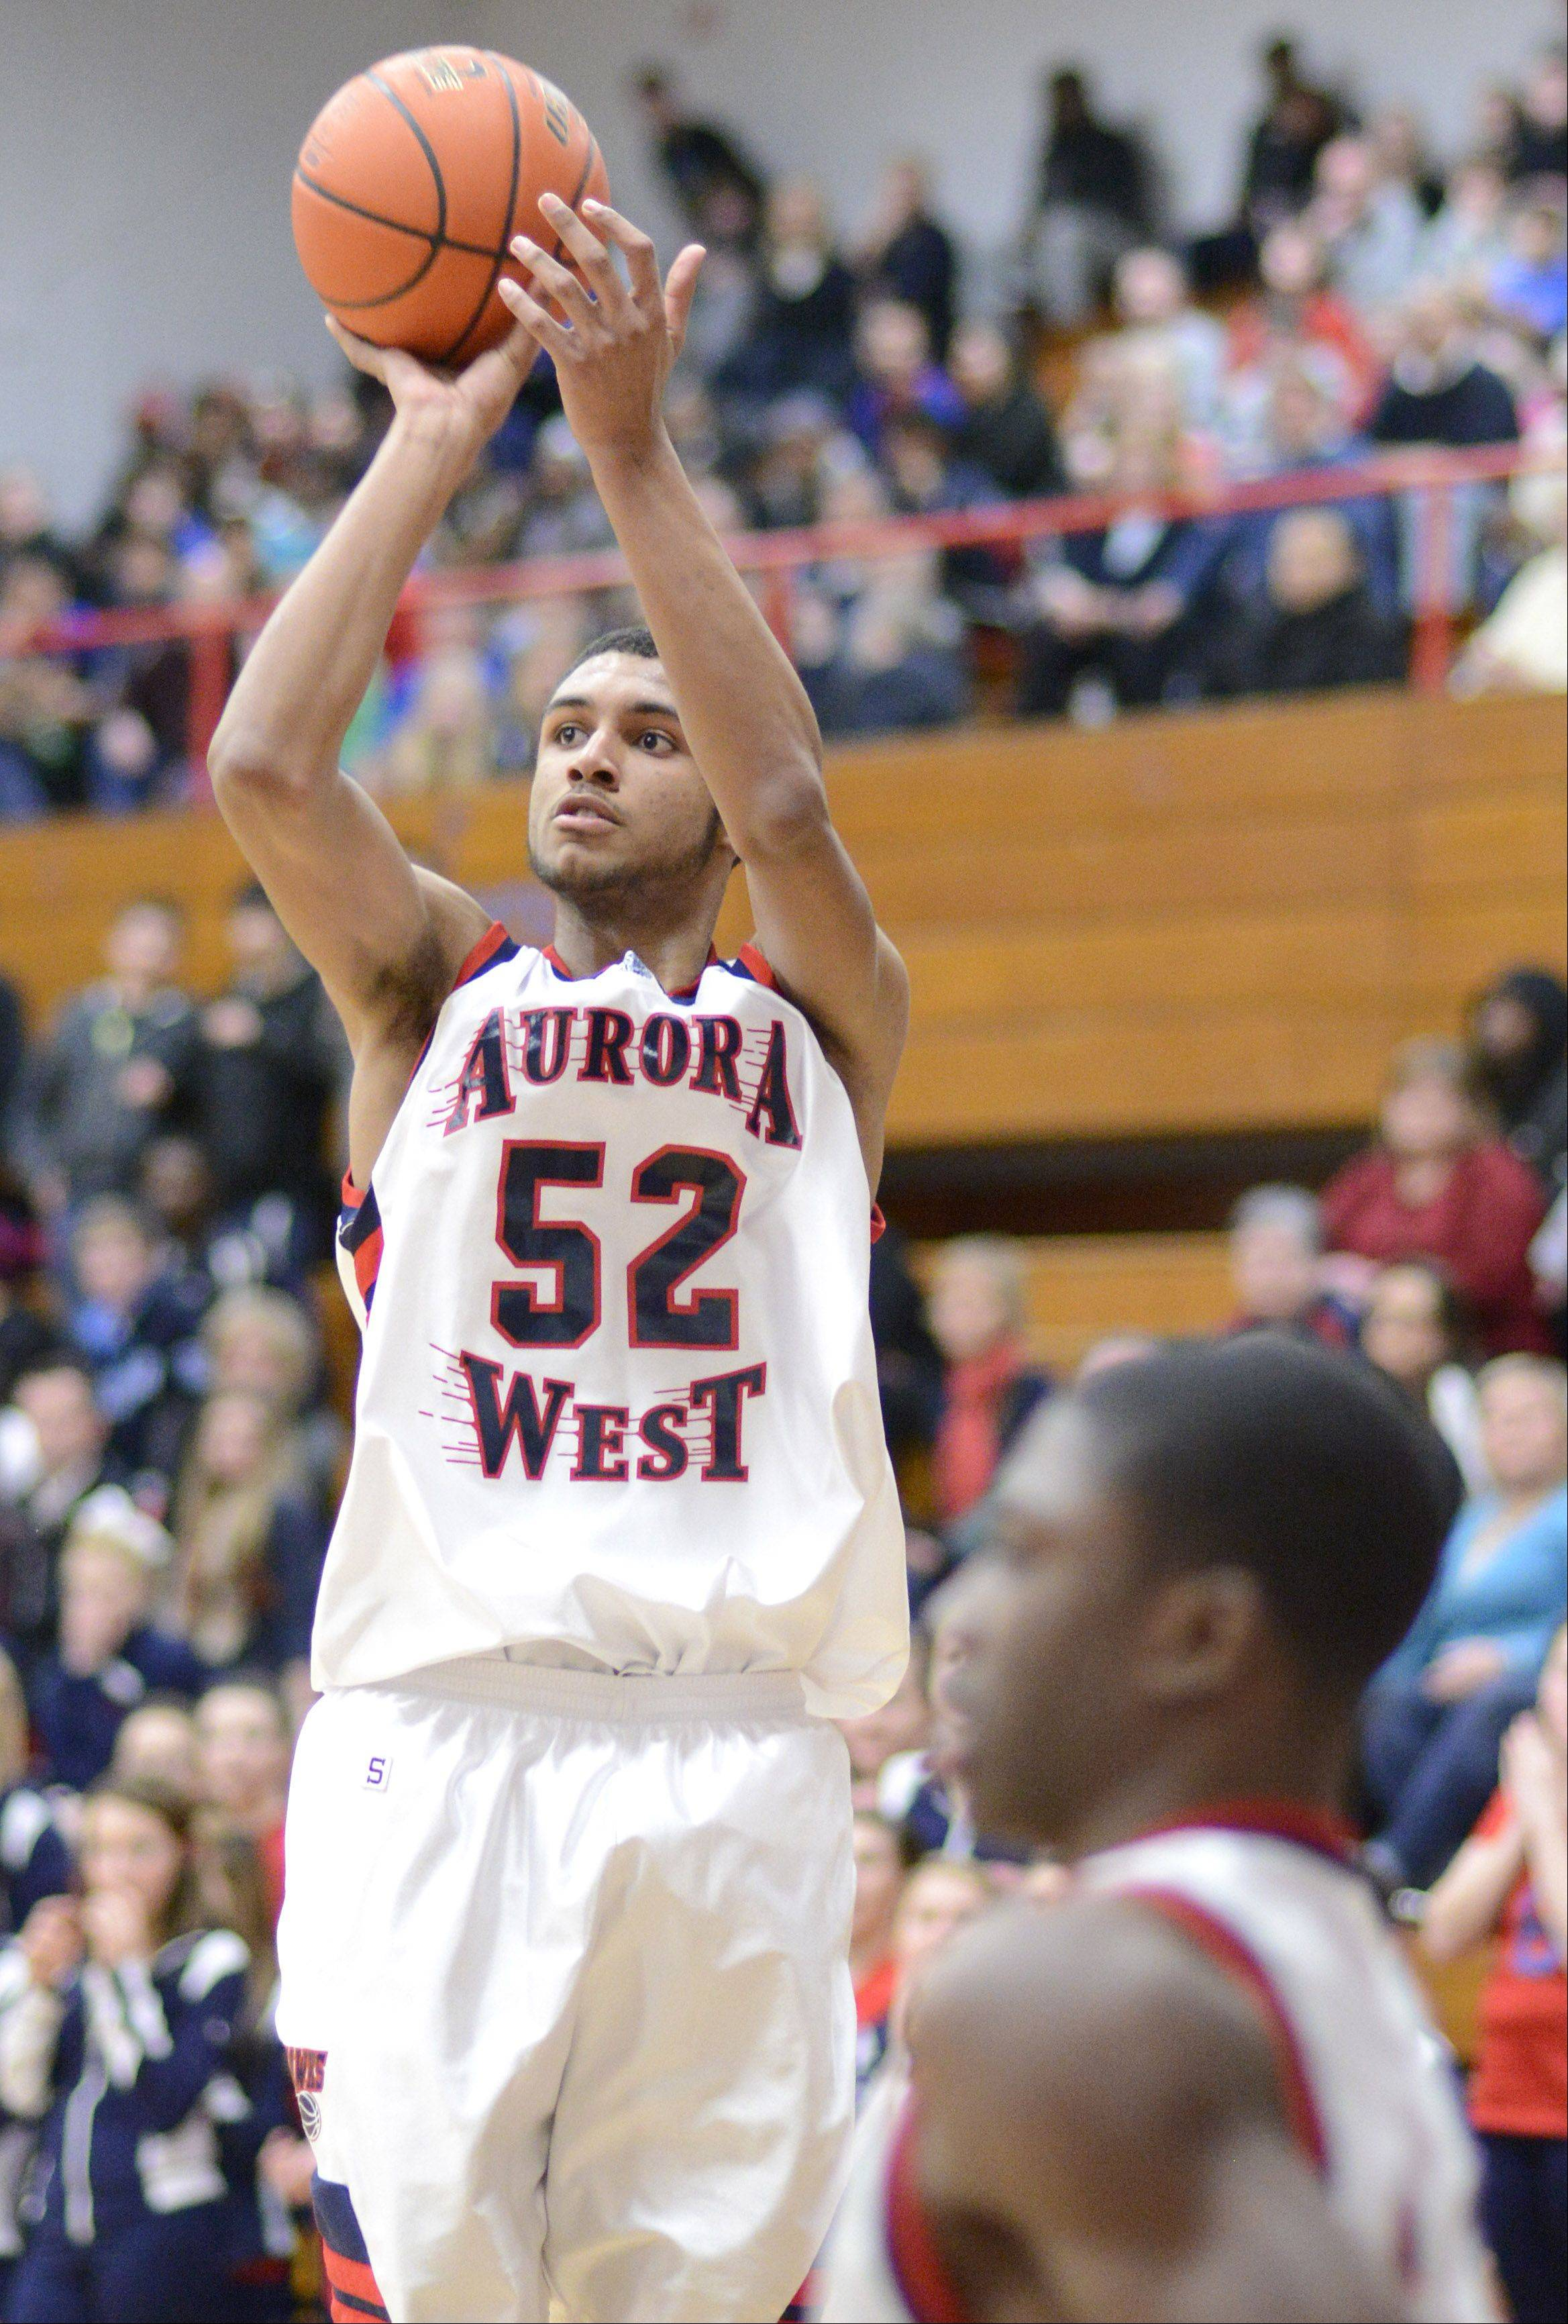 West Aurora's Joshua McAuley sinks a shot in the third quarter on Wednesday, February 20.